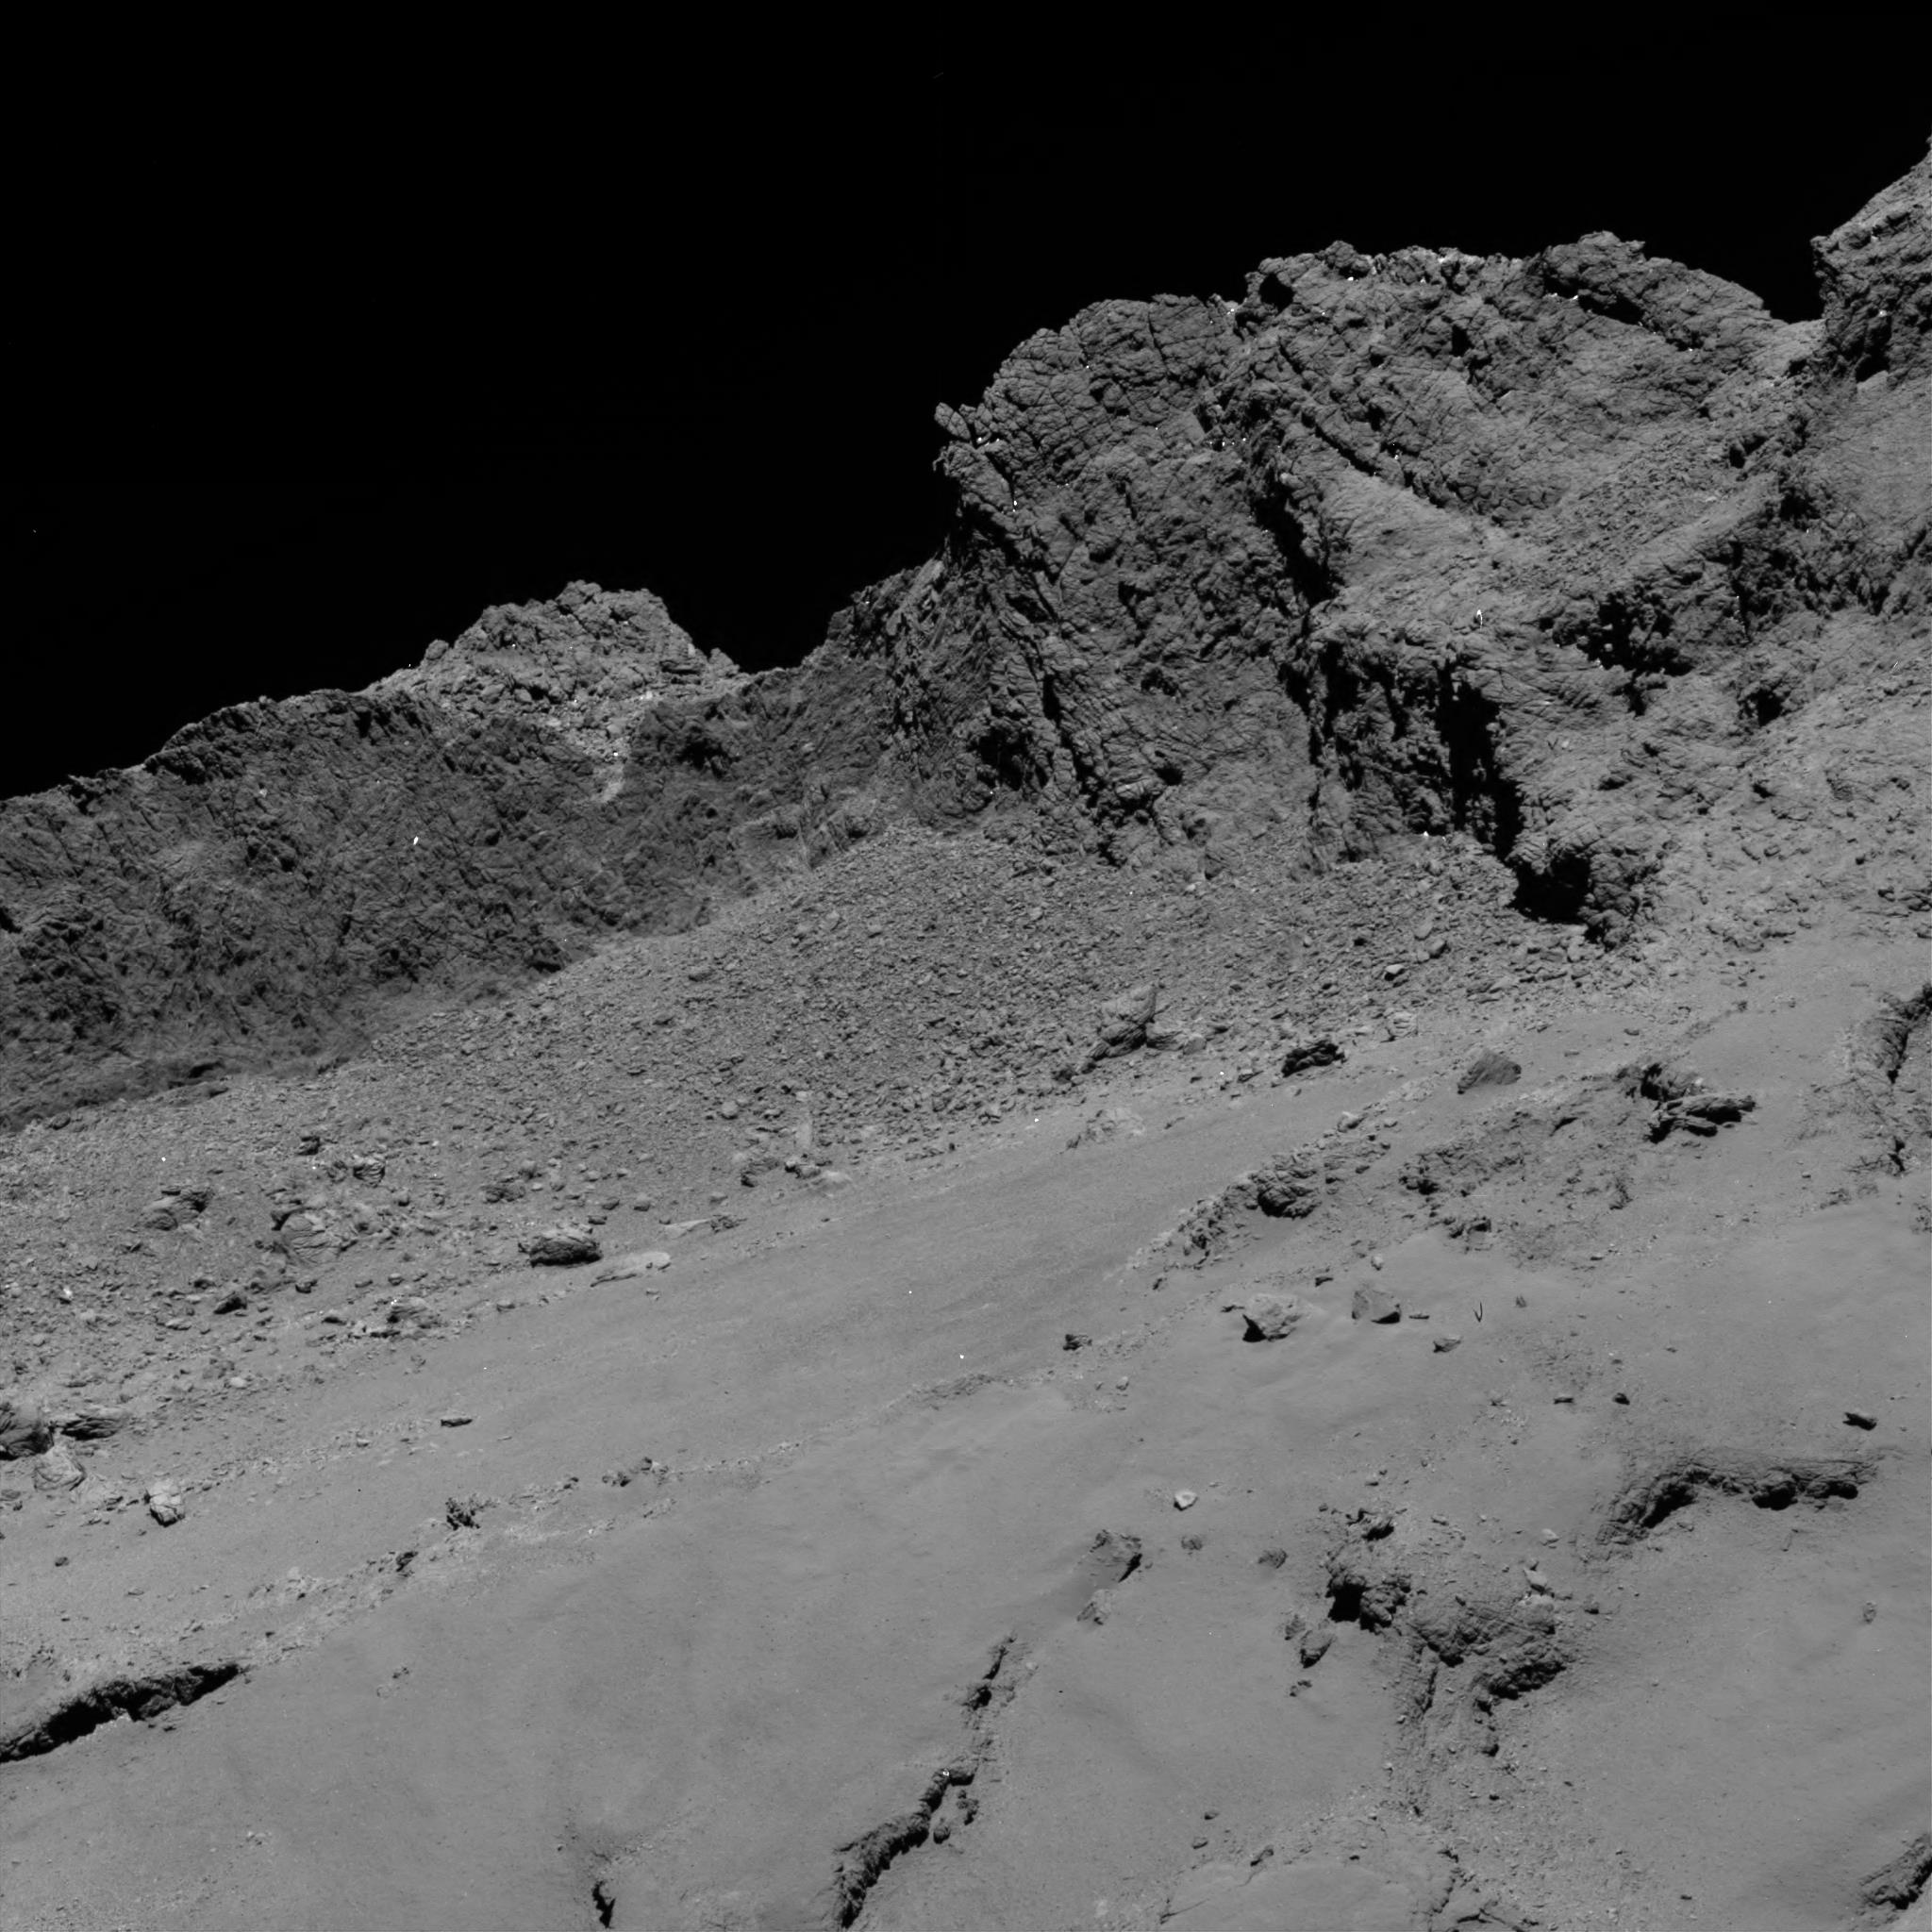 Rosetta's Dramatic Comet Death Dive Was Most-Watched Livestream Event of 2016